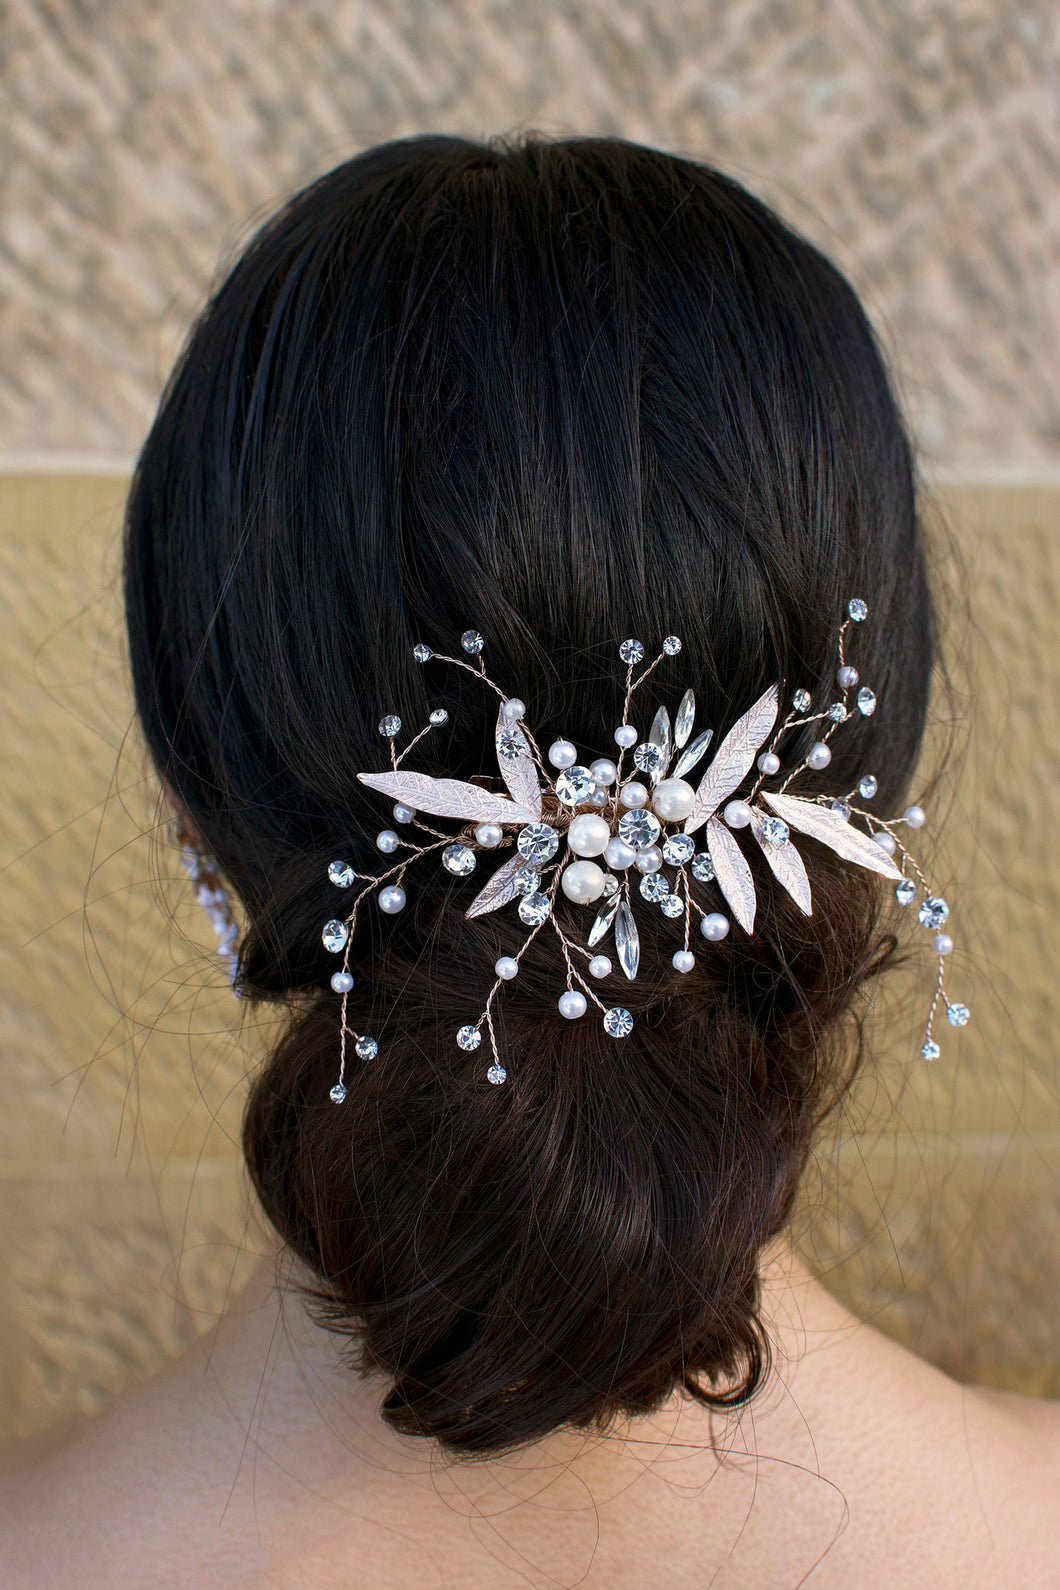 dark hair model wears a comb with pearls and leaves at the back of her head